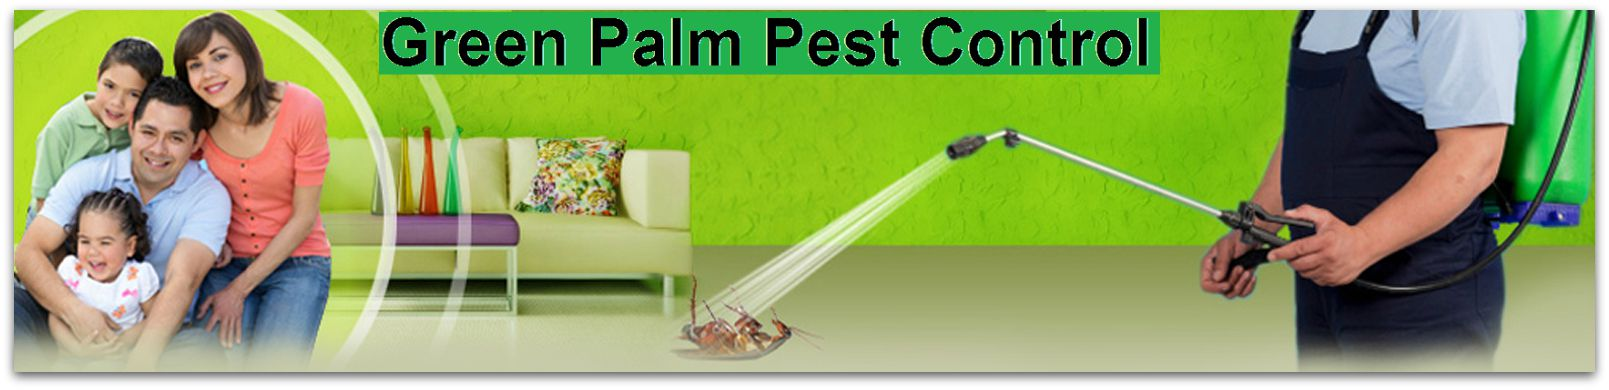 Green Palm Pest Control Staff